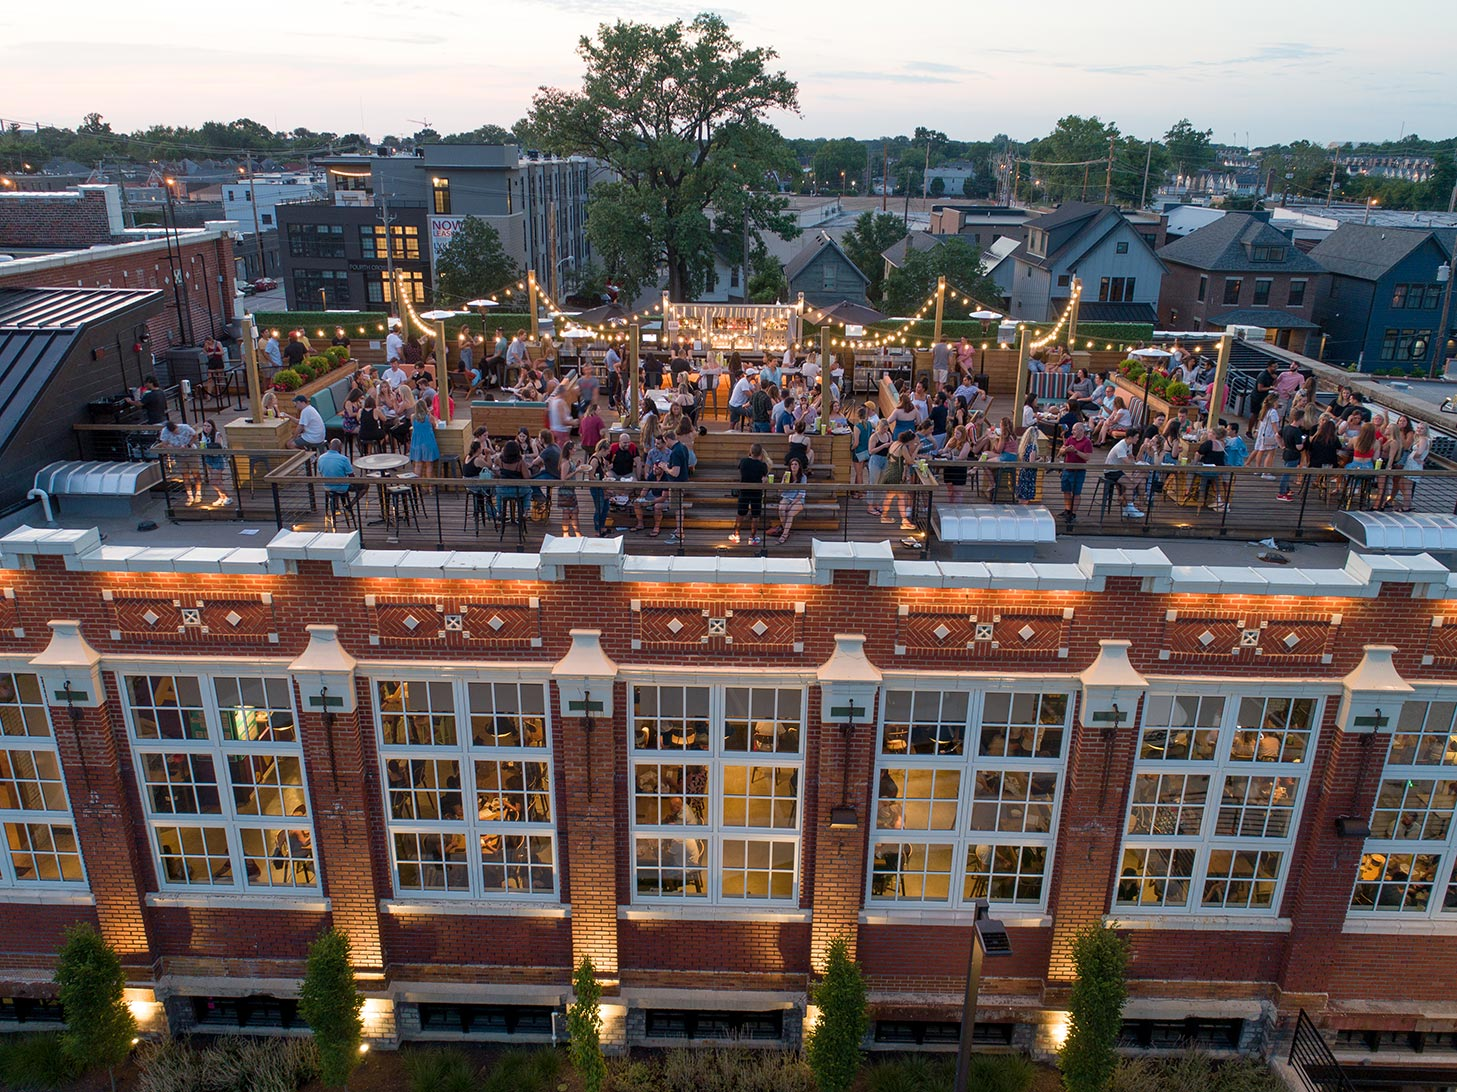 Aerial view of Budd Dairy Food Hall rooftop with lots of people at dusk.